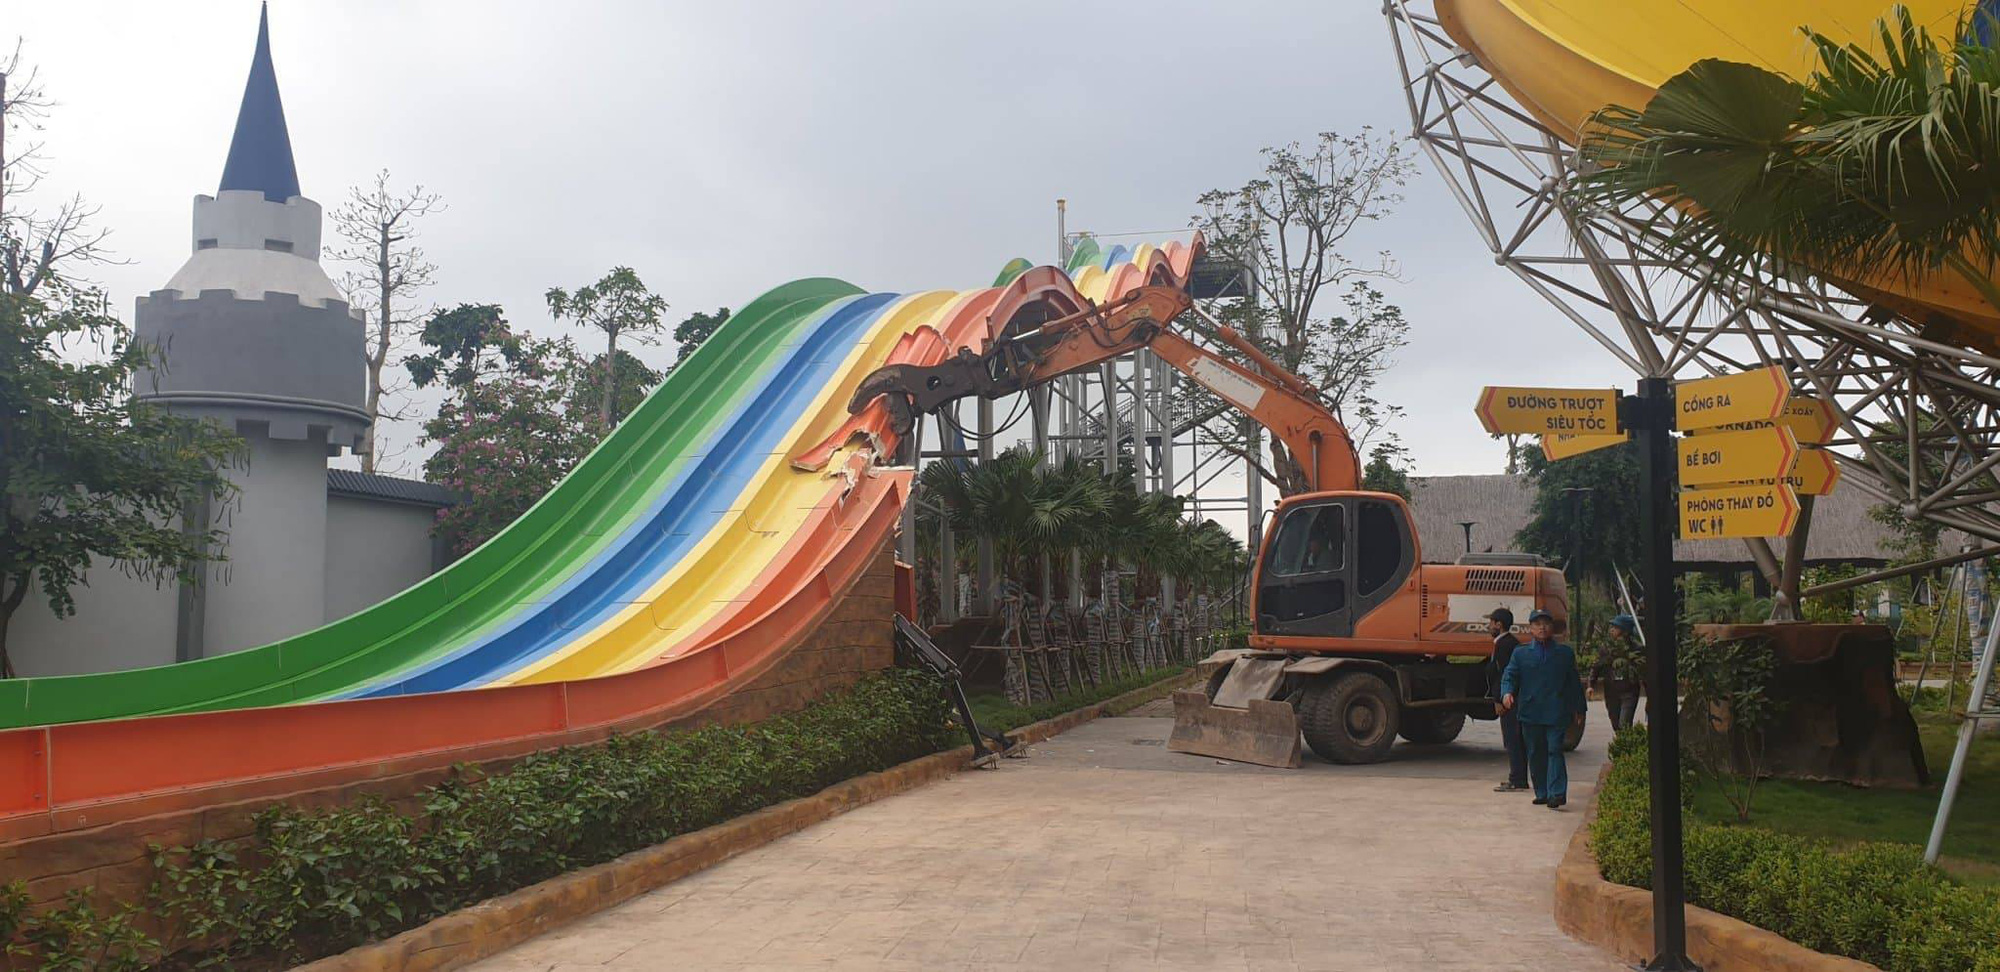 Hanoi's largest water park demolished 6 months after opening